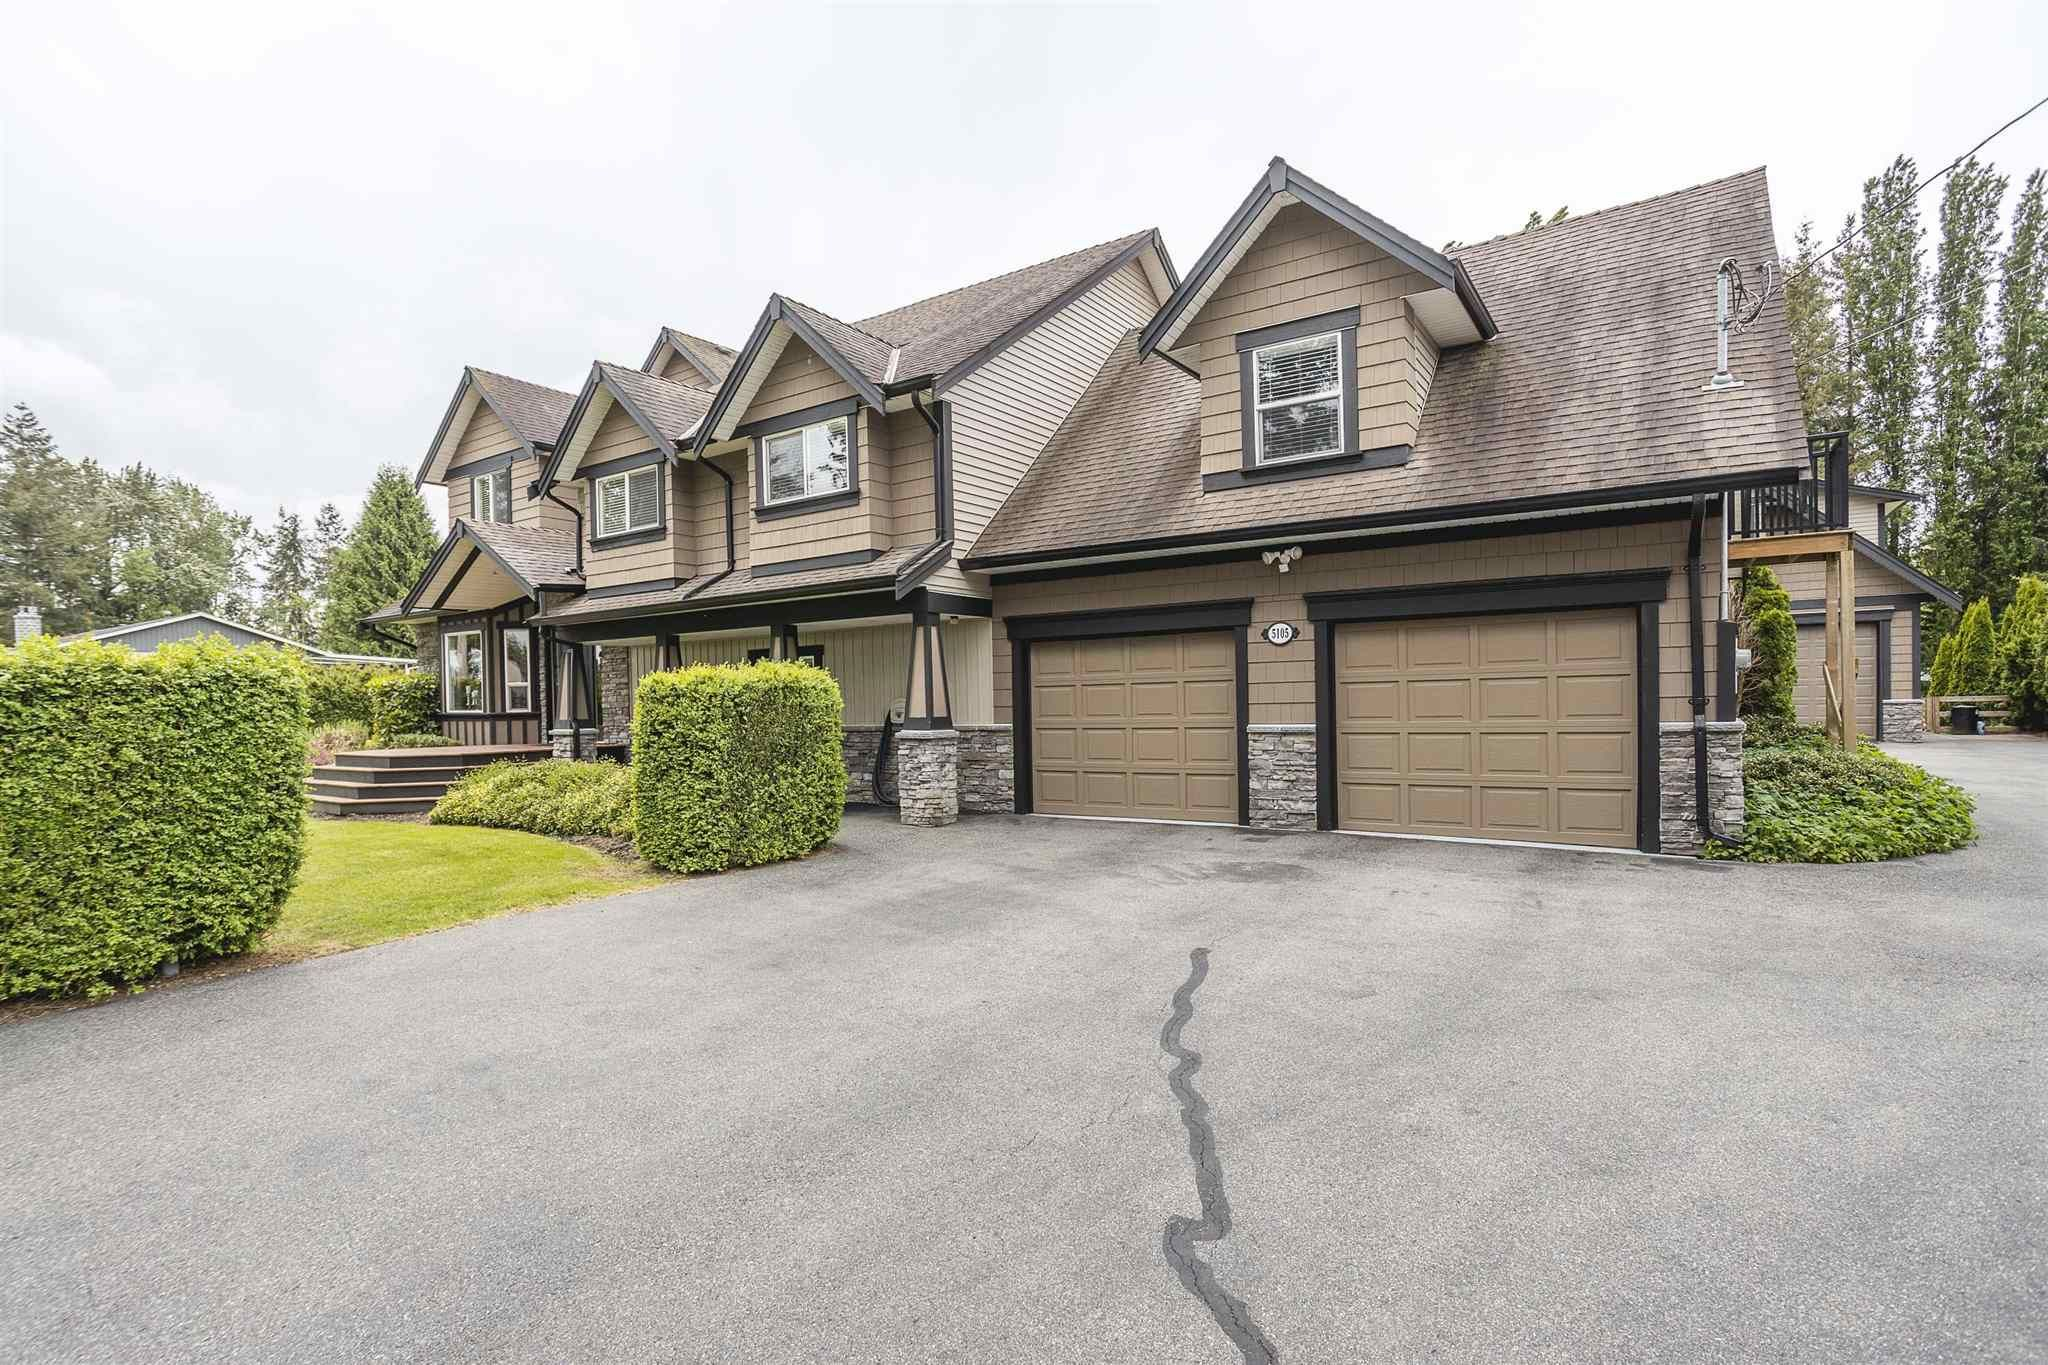 """Main Photo: 5105 237 Street in Langley: Salmon River House for sale in """"Salmon River"""" : MLS®# R2602446"""